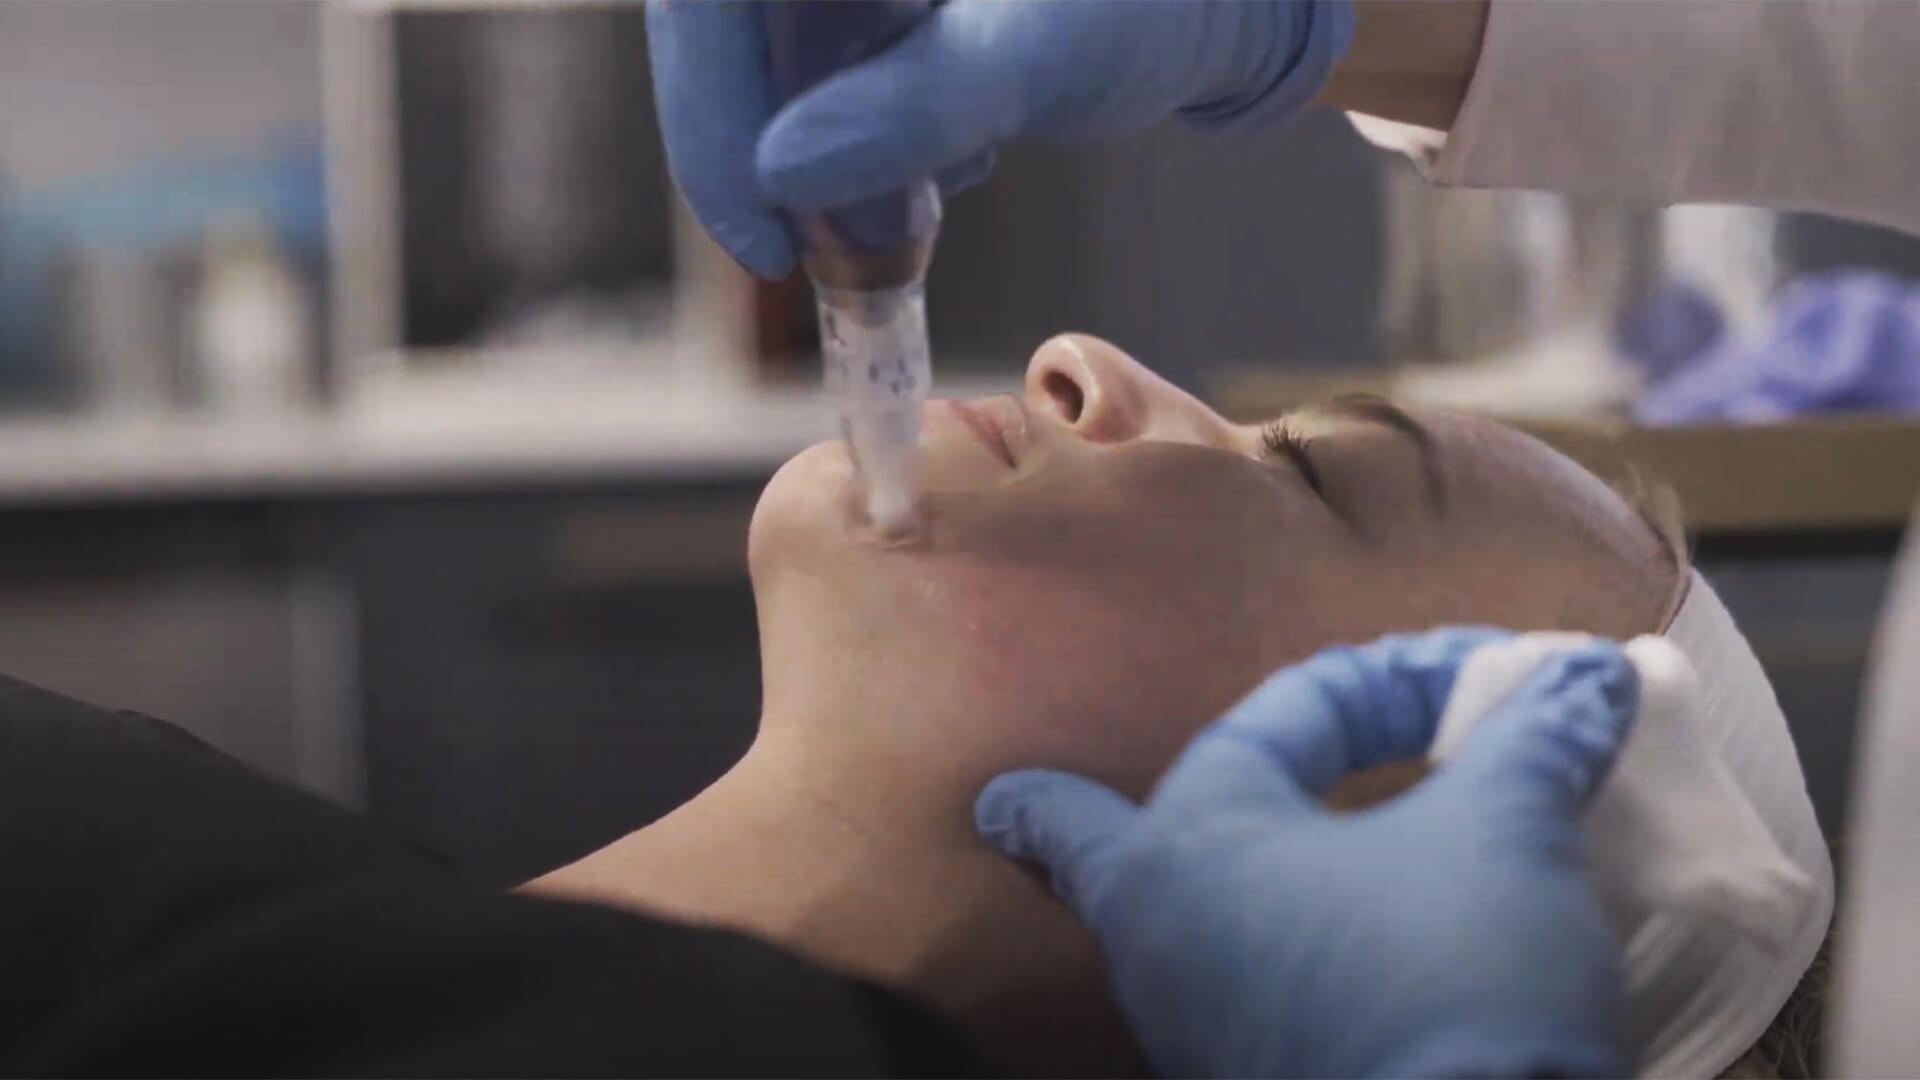 Demonstration performed by Amanda J. Conti at Bespoke Rx in Tampa: Microneedling